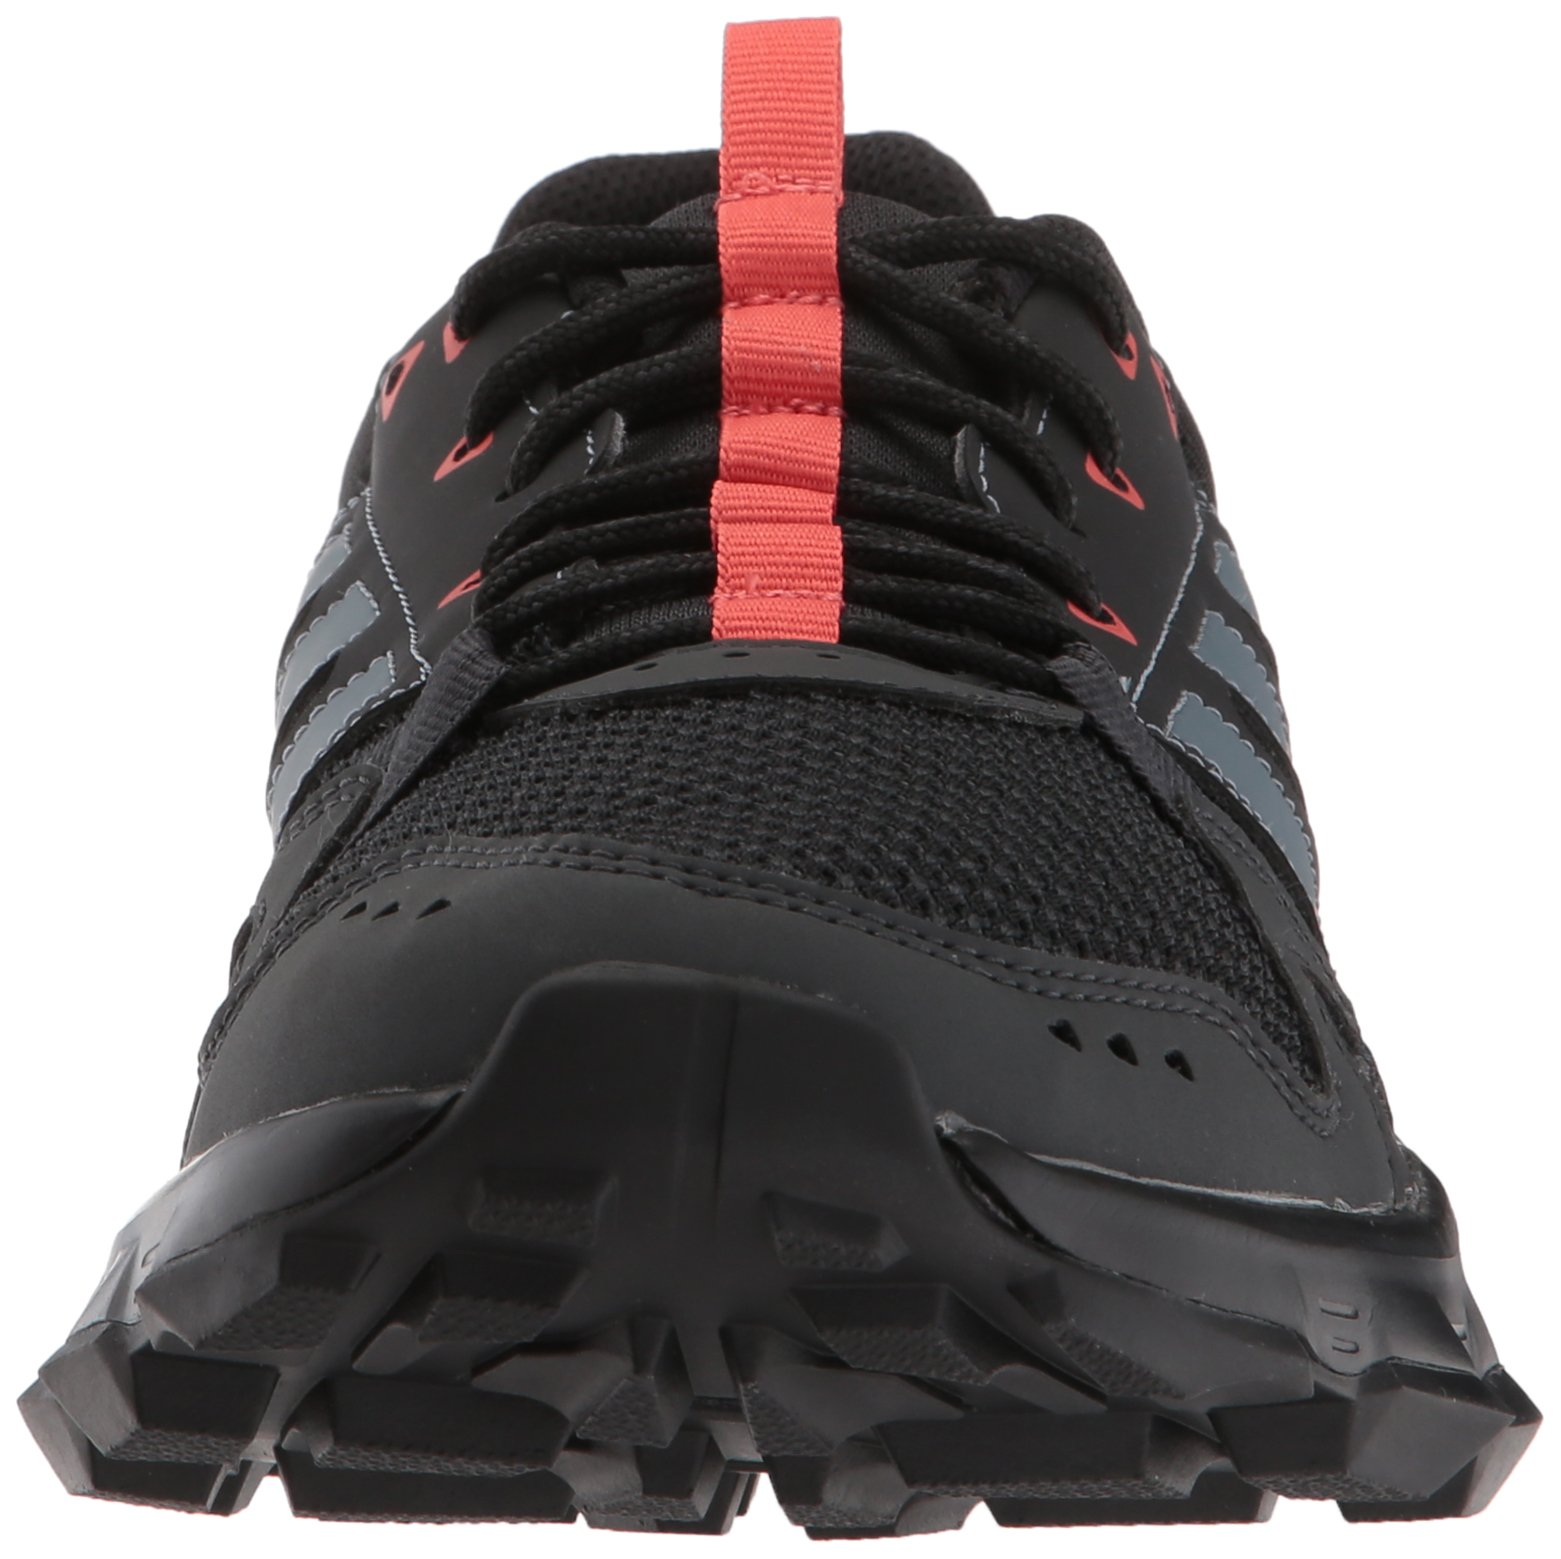 adidas Women's Rockadia w Trail Running Shoe, Carbon/Raw Steel/Trace Scarlet, 6 M US by adidas (Image #4)